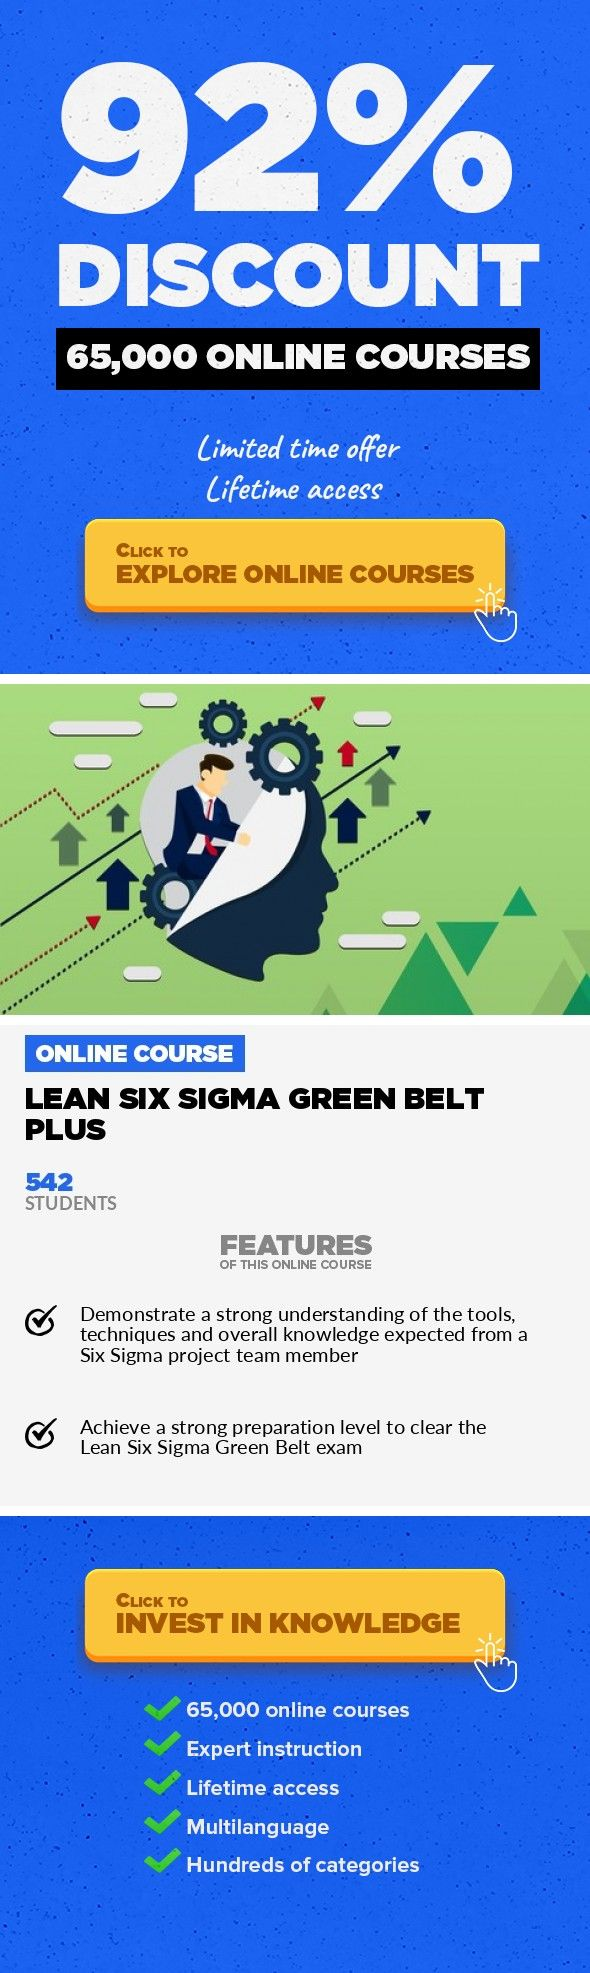 Lean Six Sigma Green Belt Plus Operations Business Highly Impactful